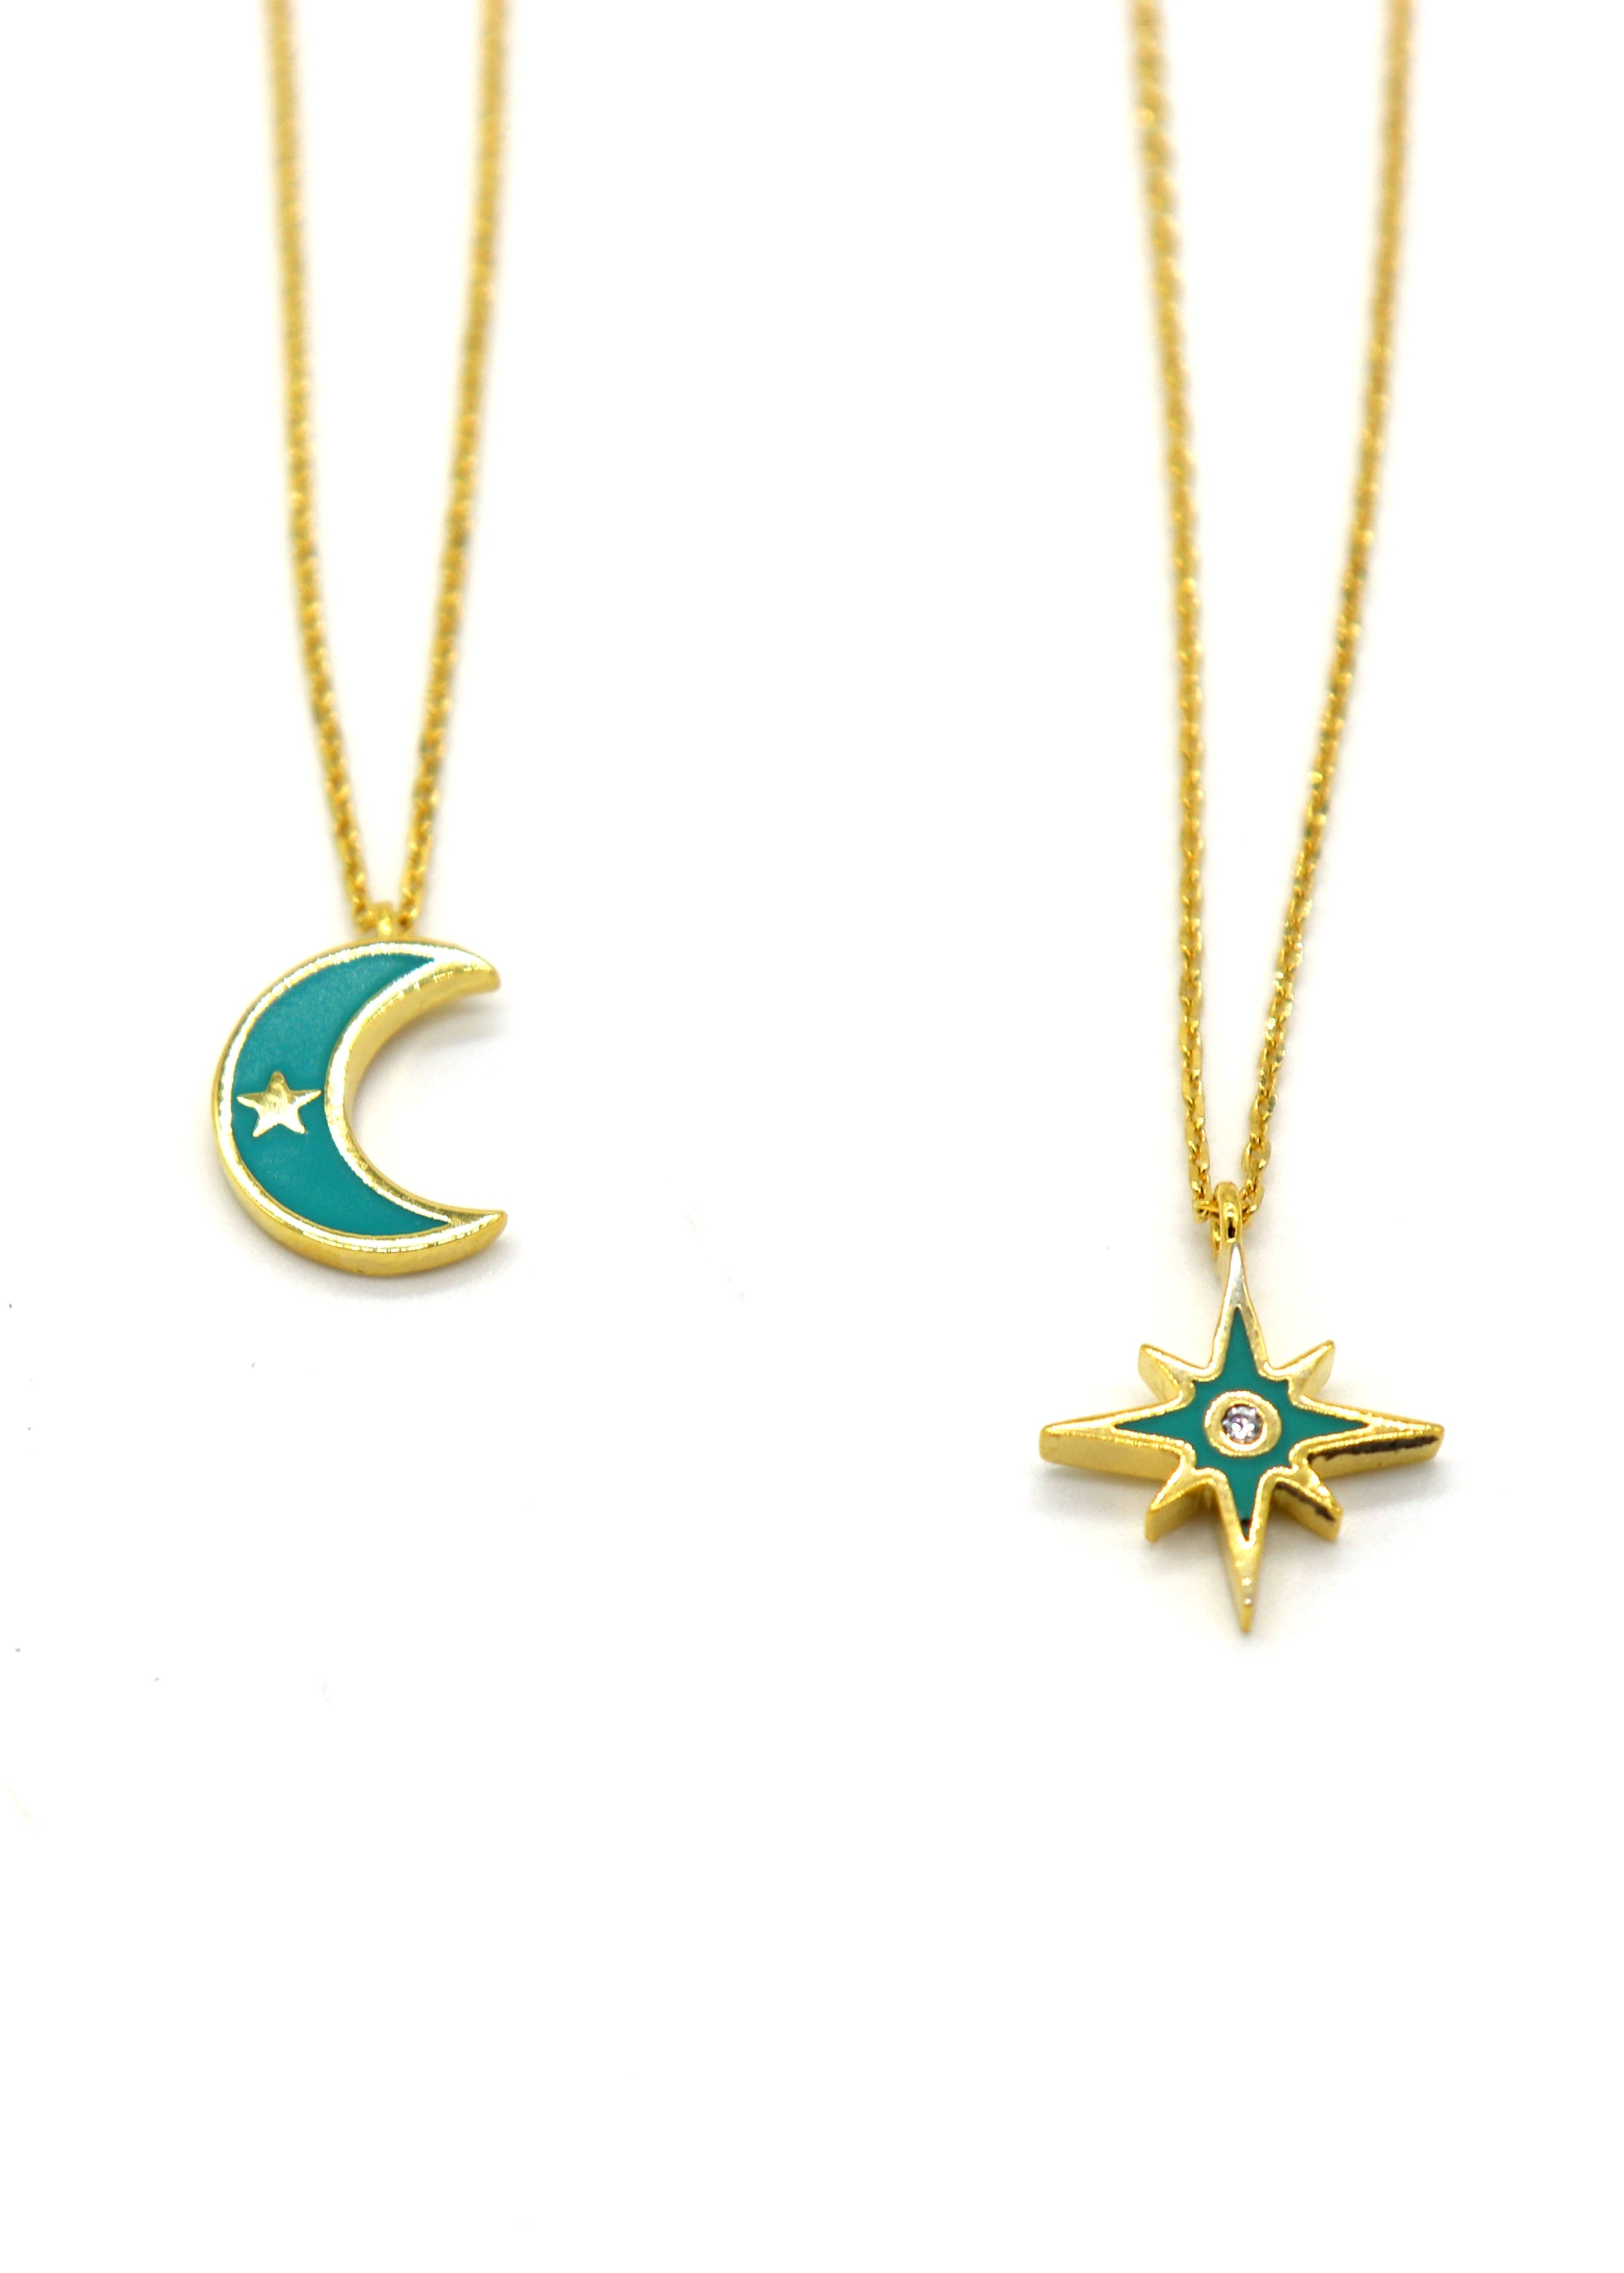 Necklace — Turquoise Crescent Moon